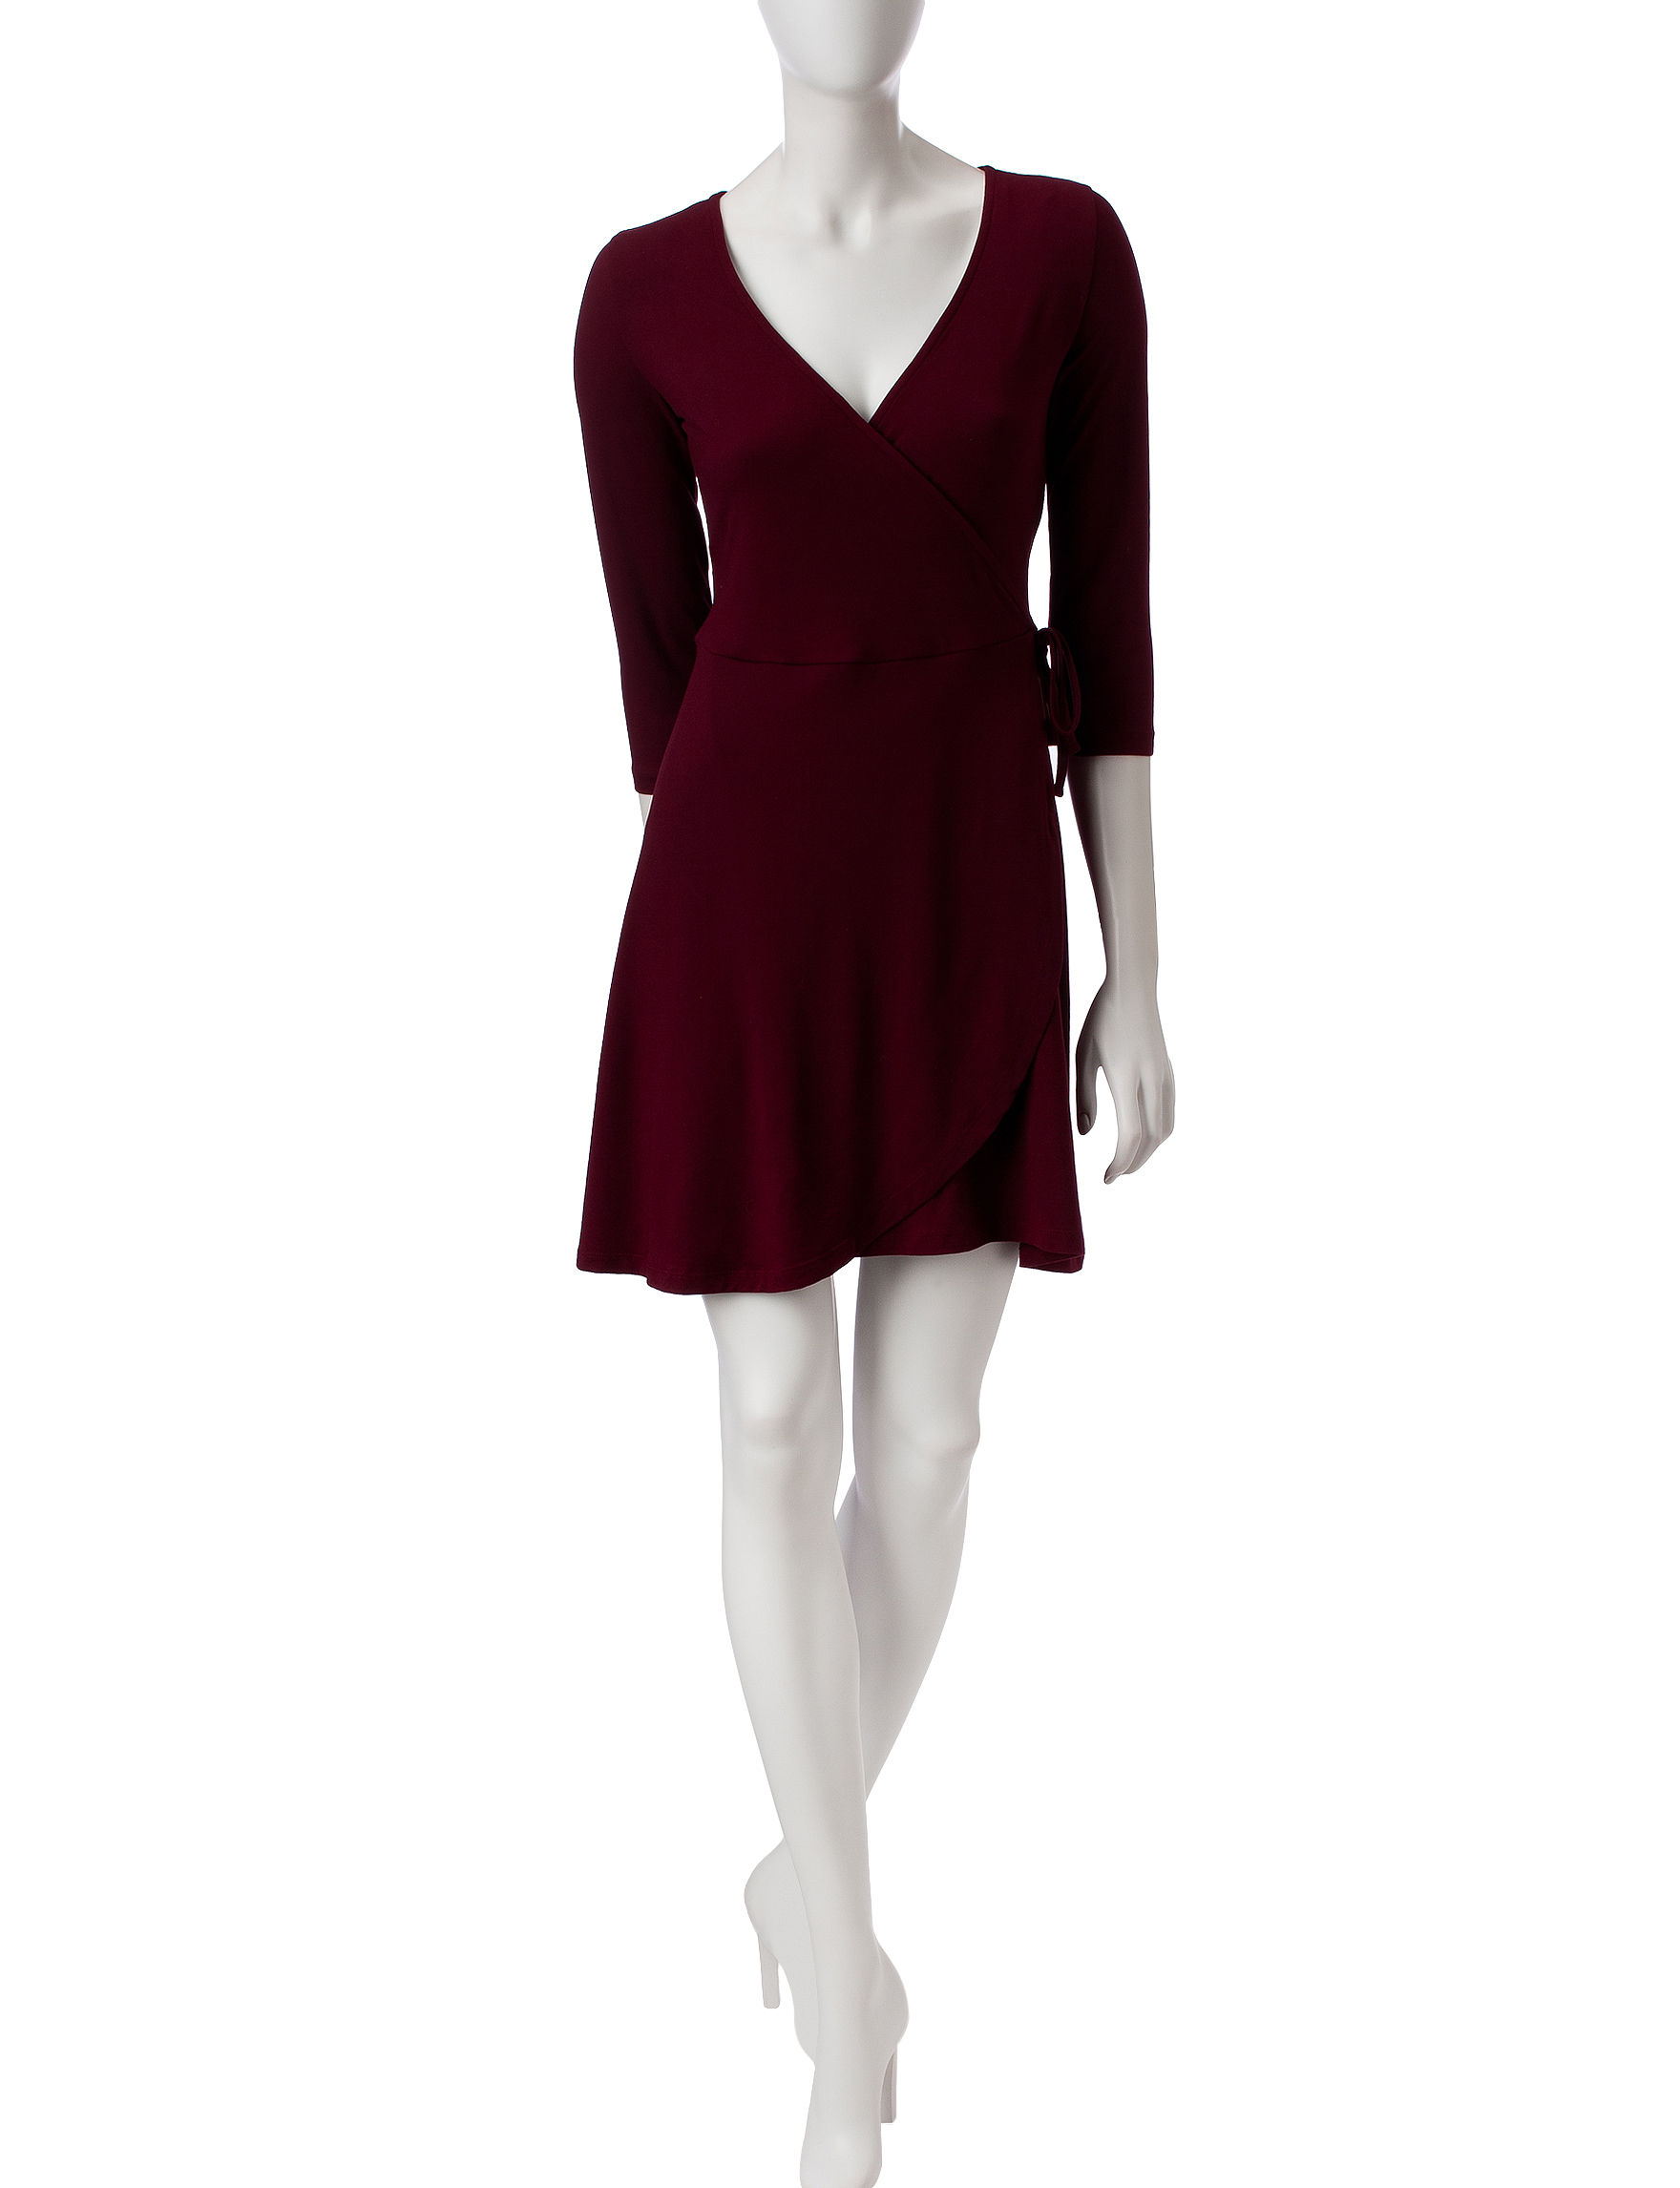 Wishful Park Burgundy Everyday & Casual Fit & Flare Dresses